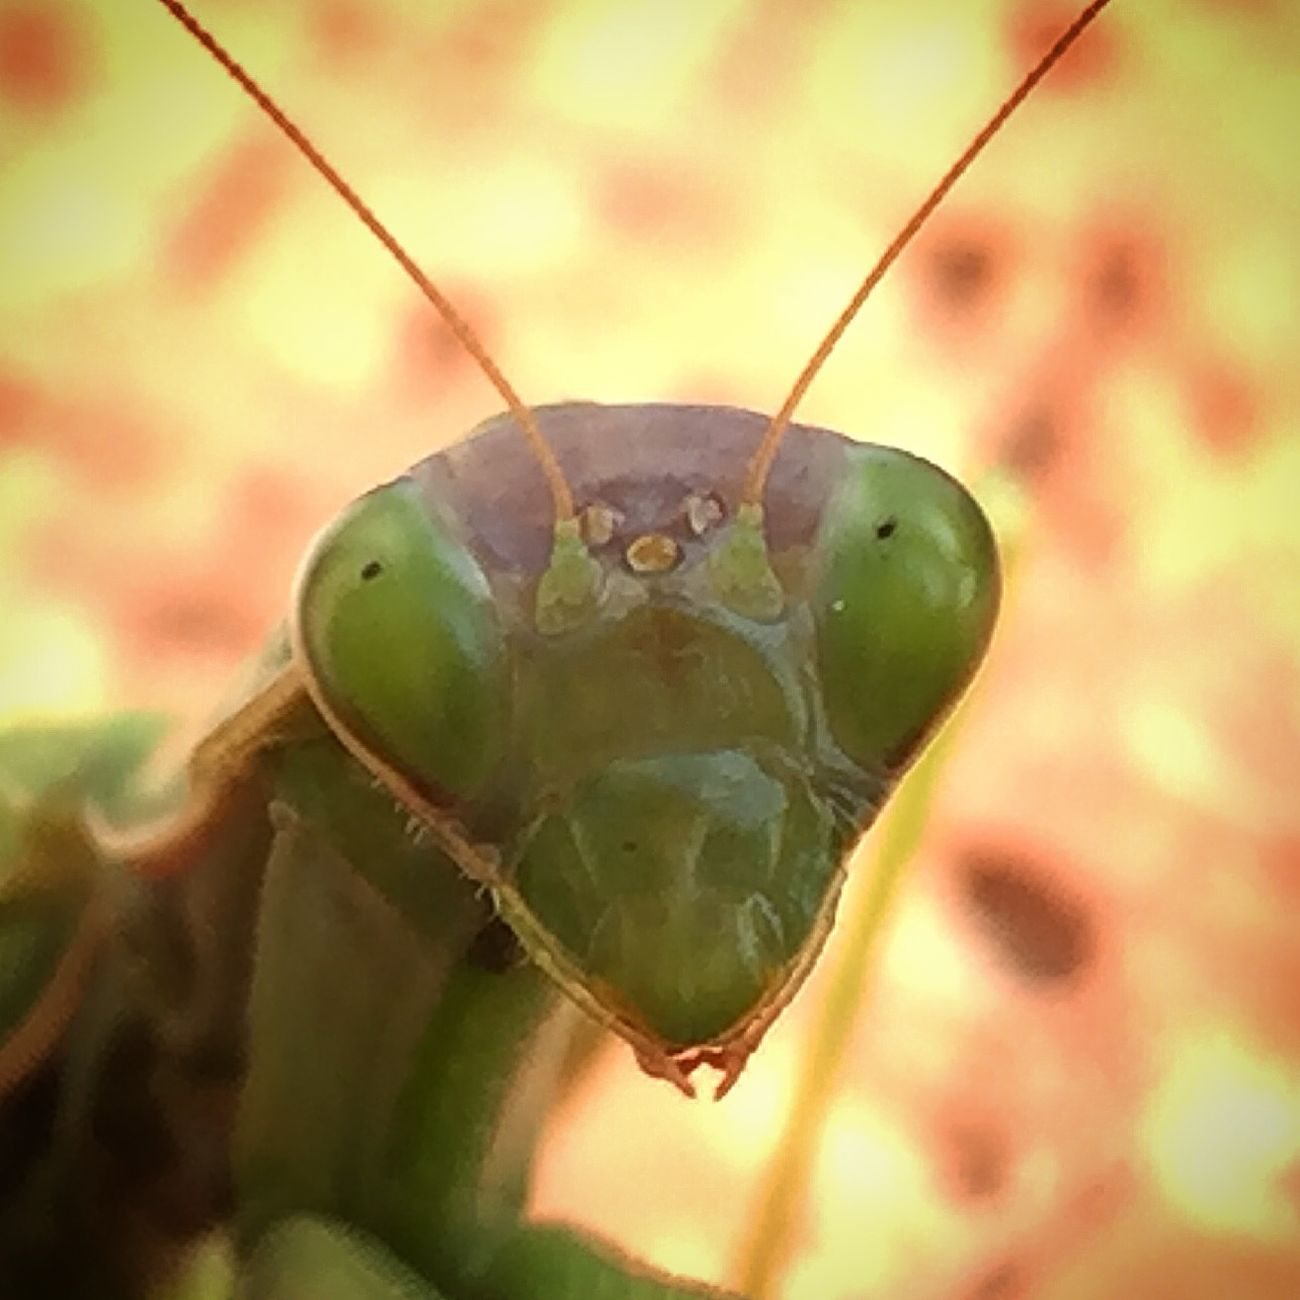 Beautiful Nature Naturephotography EyeEm Nature Lover Animal Photography Animal Portrait EyeEm Animal Lover Animallovers Mantis Preying Mantis Collection Preying Mantis